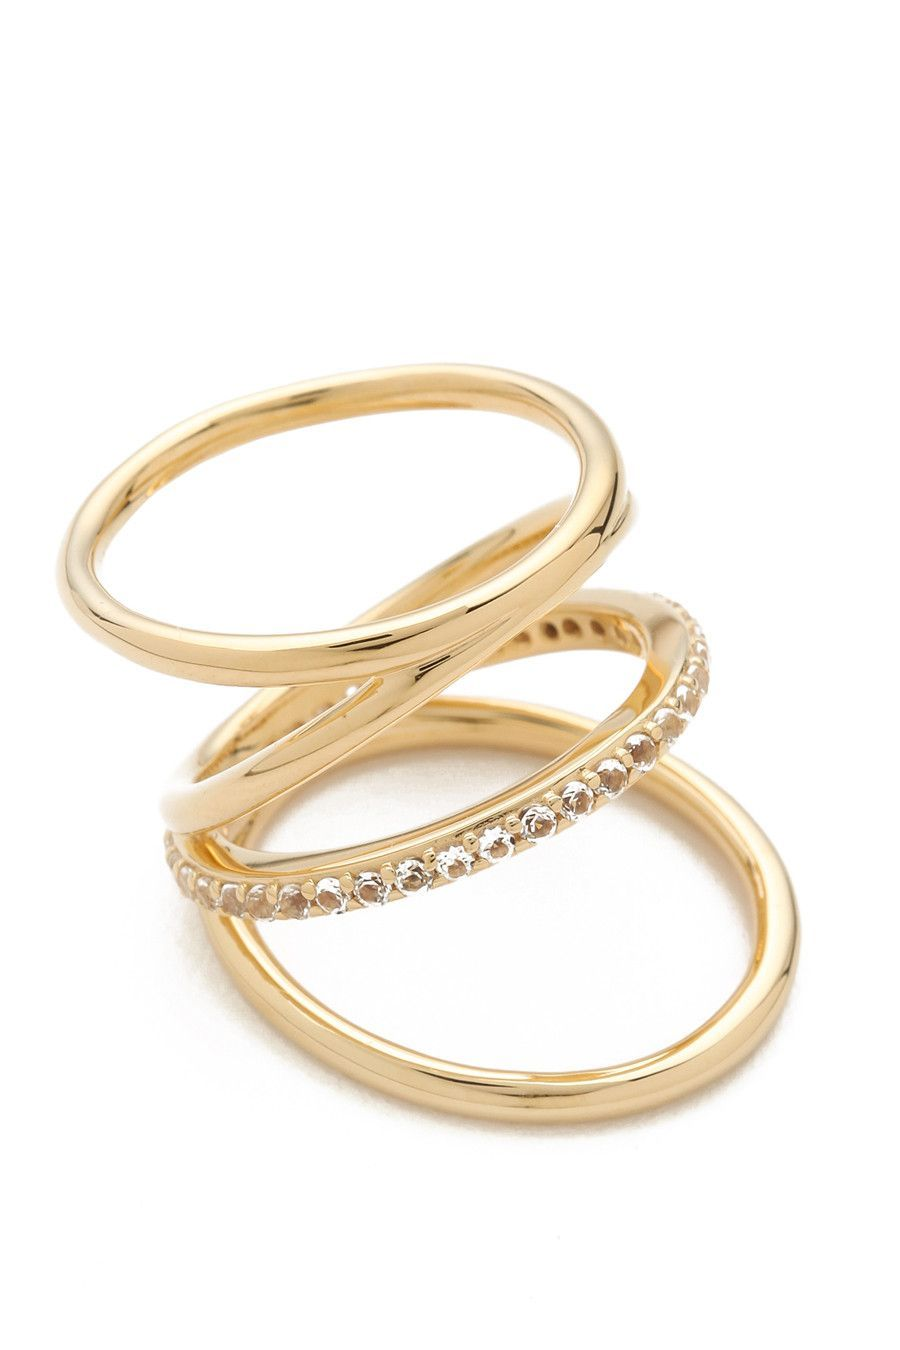 Elizabeth & James Pave Ray Ring in Metallic Gold